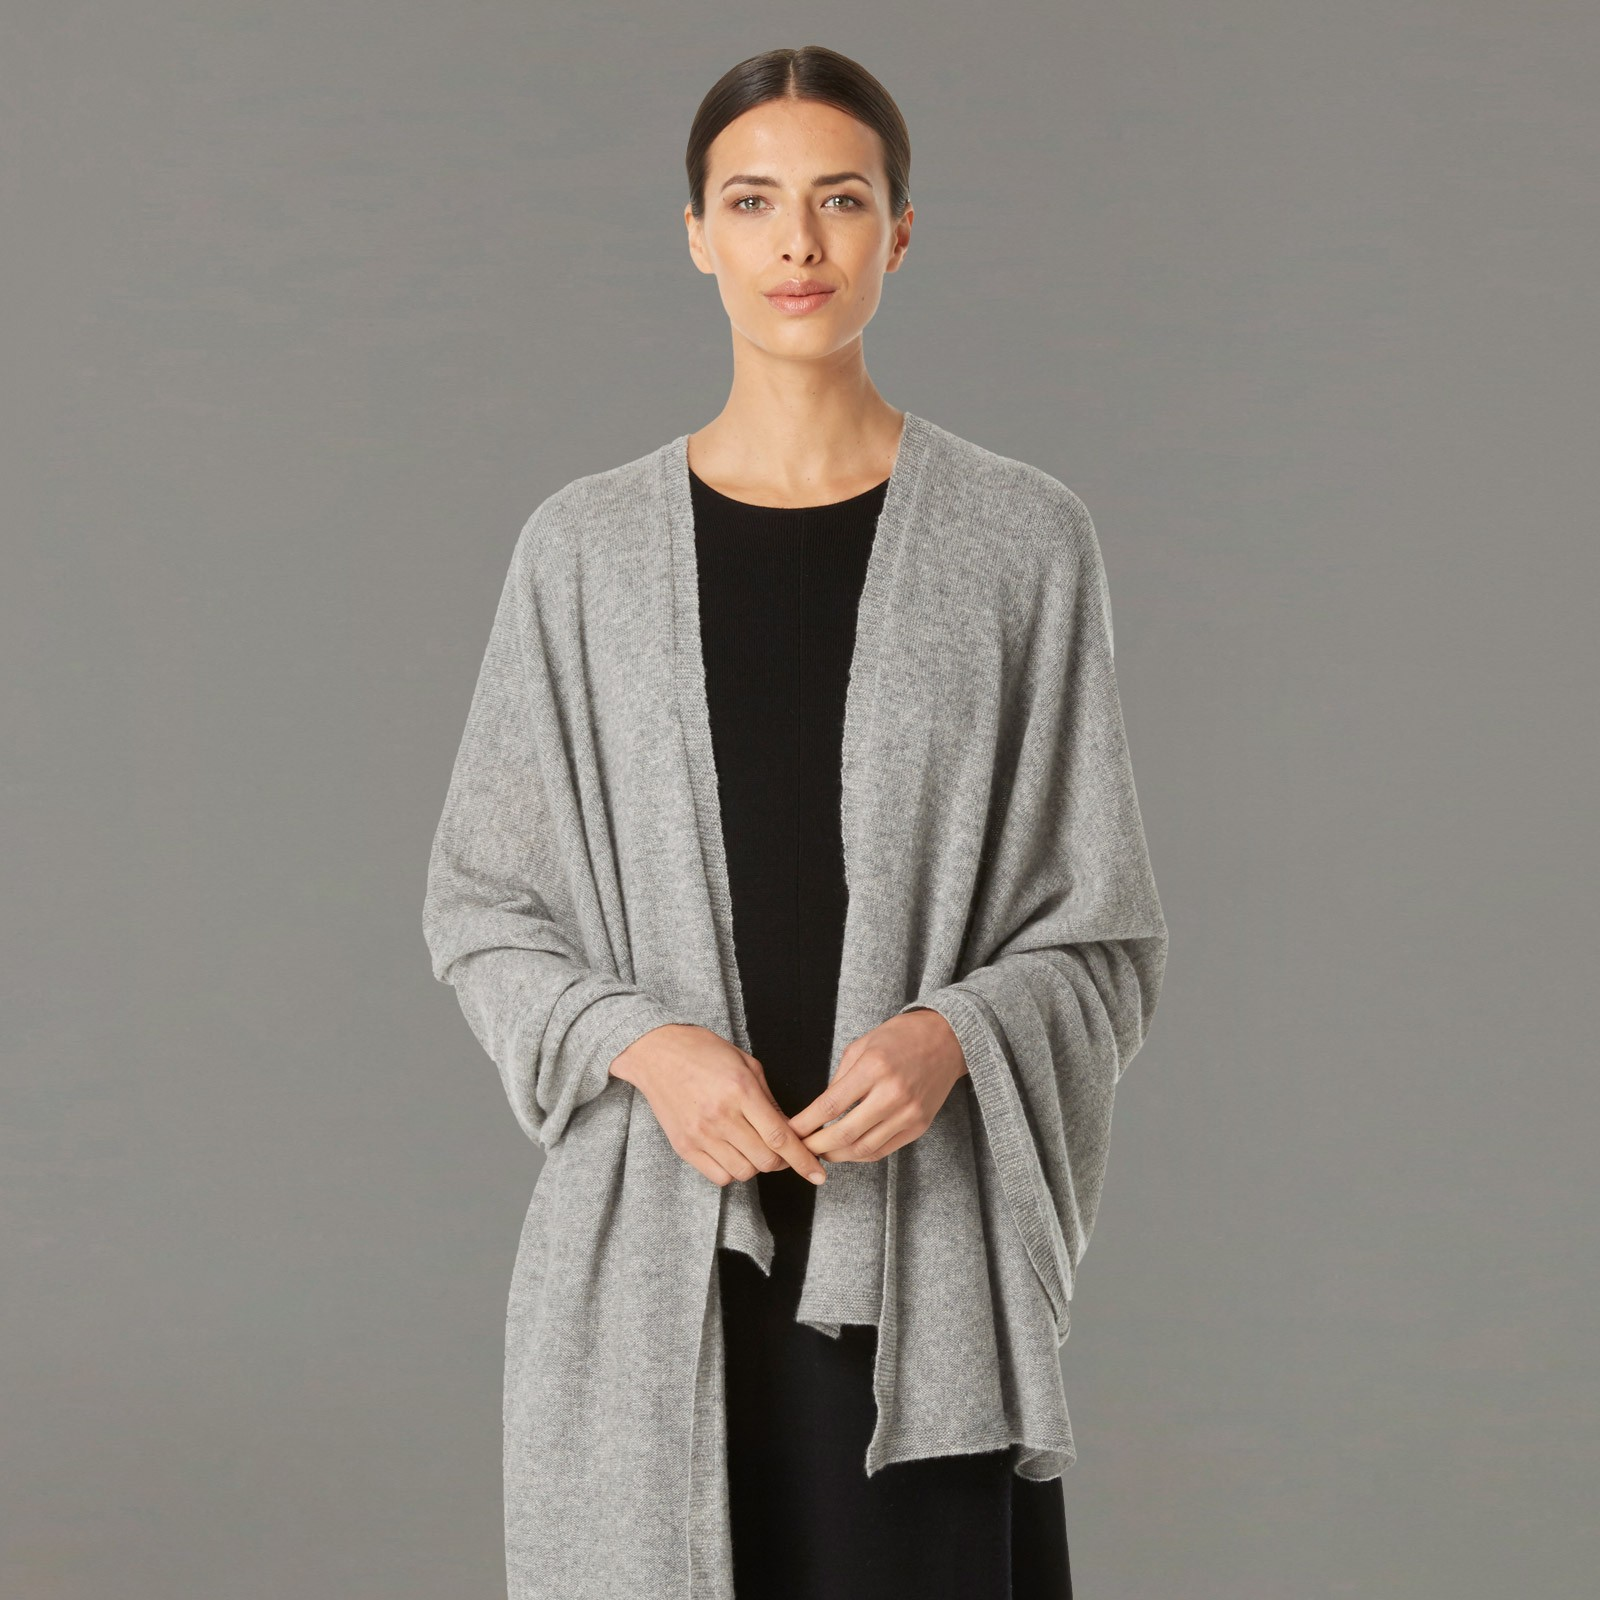 ... dark silver cashmere wrap front view ... frbmvzg